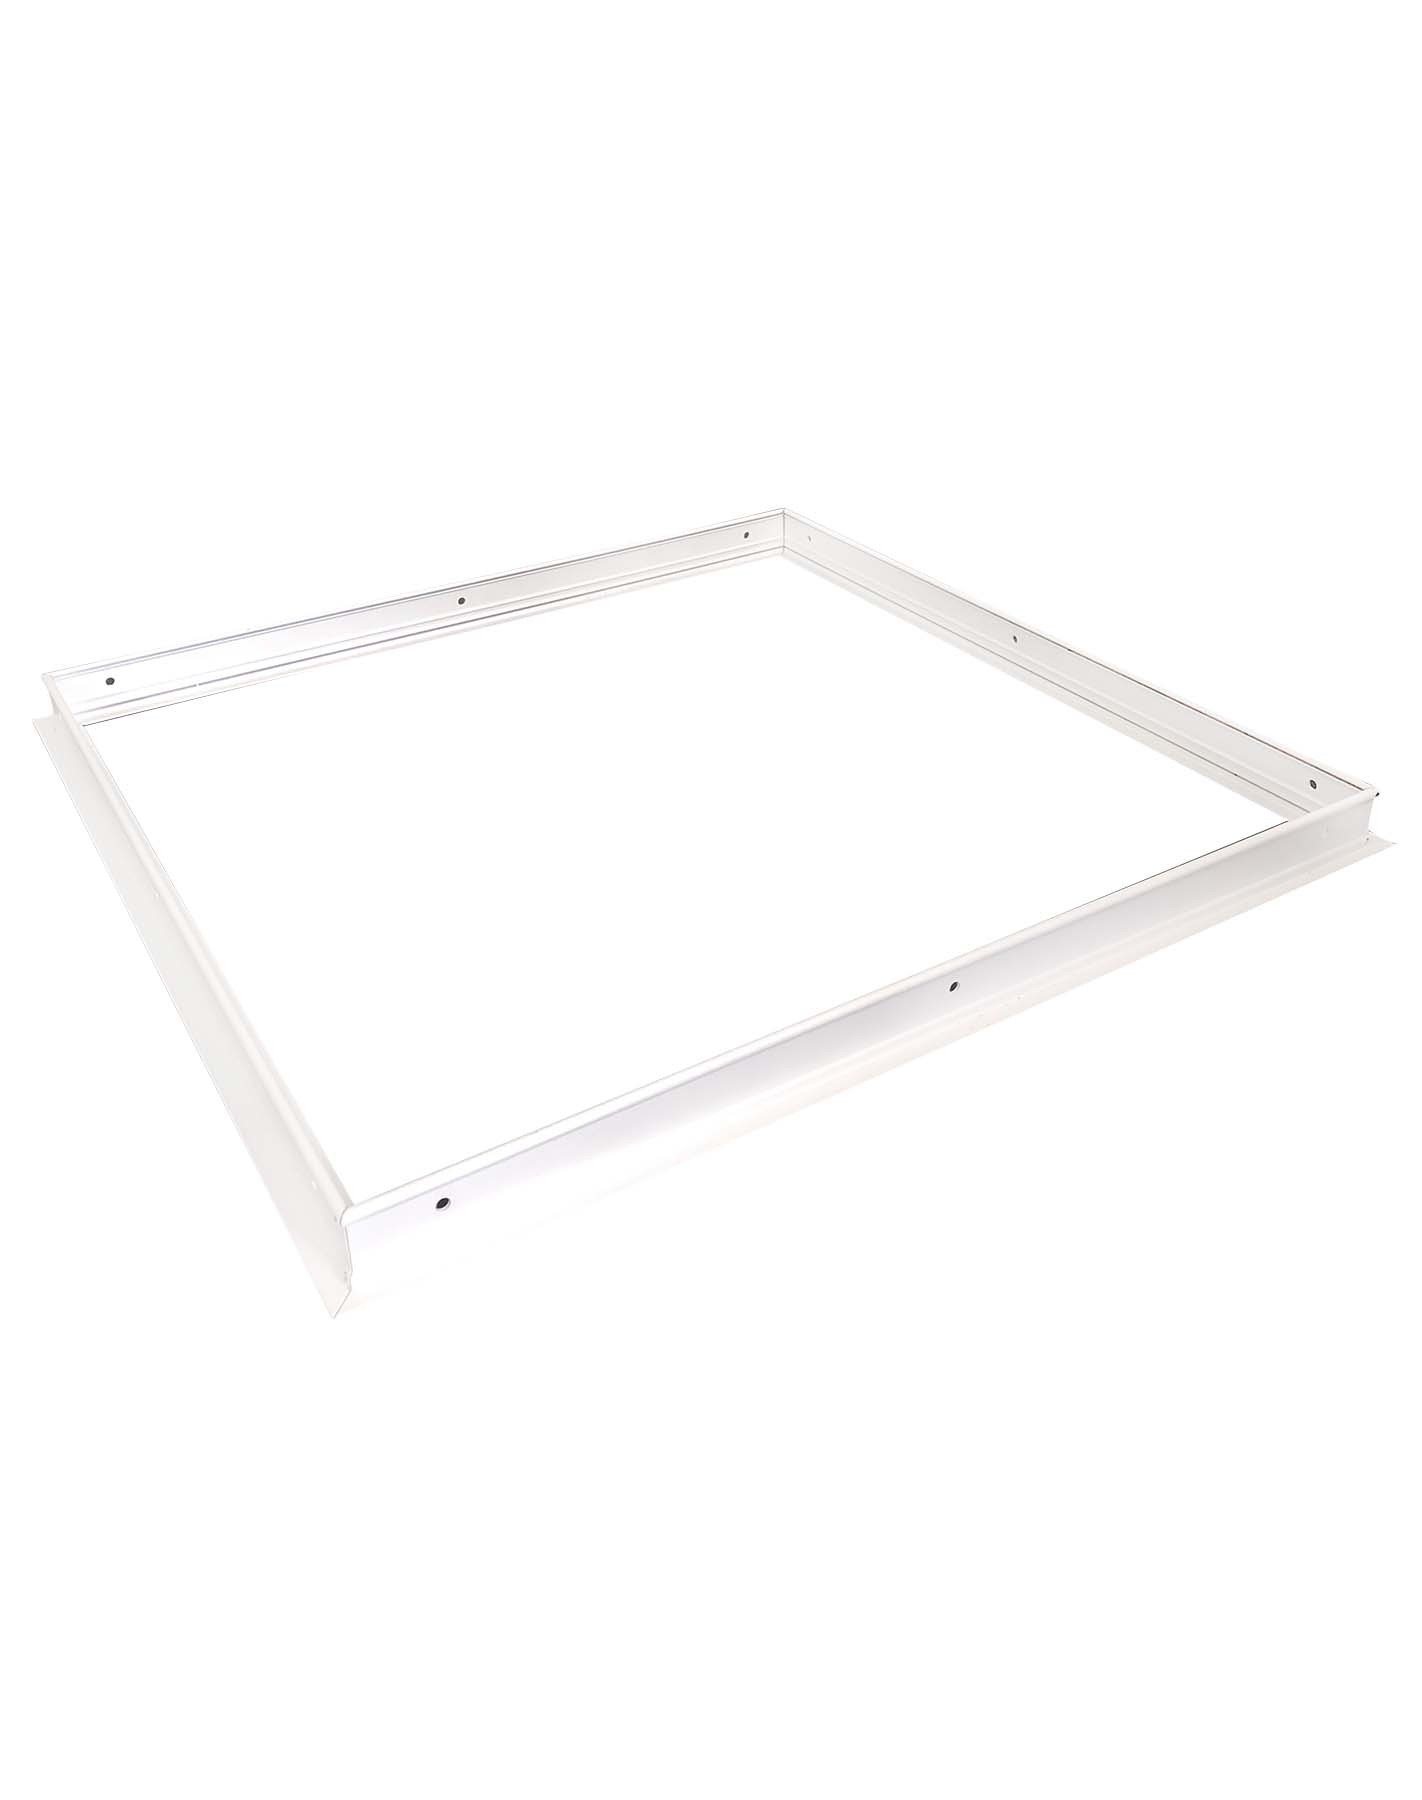 Troffer Accessary DRYWALL FRAME FOR 2X2